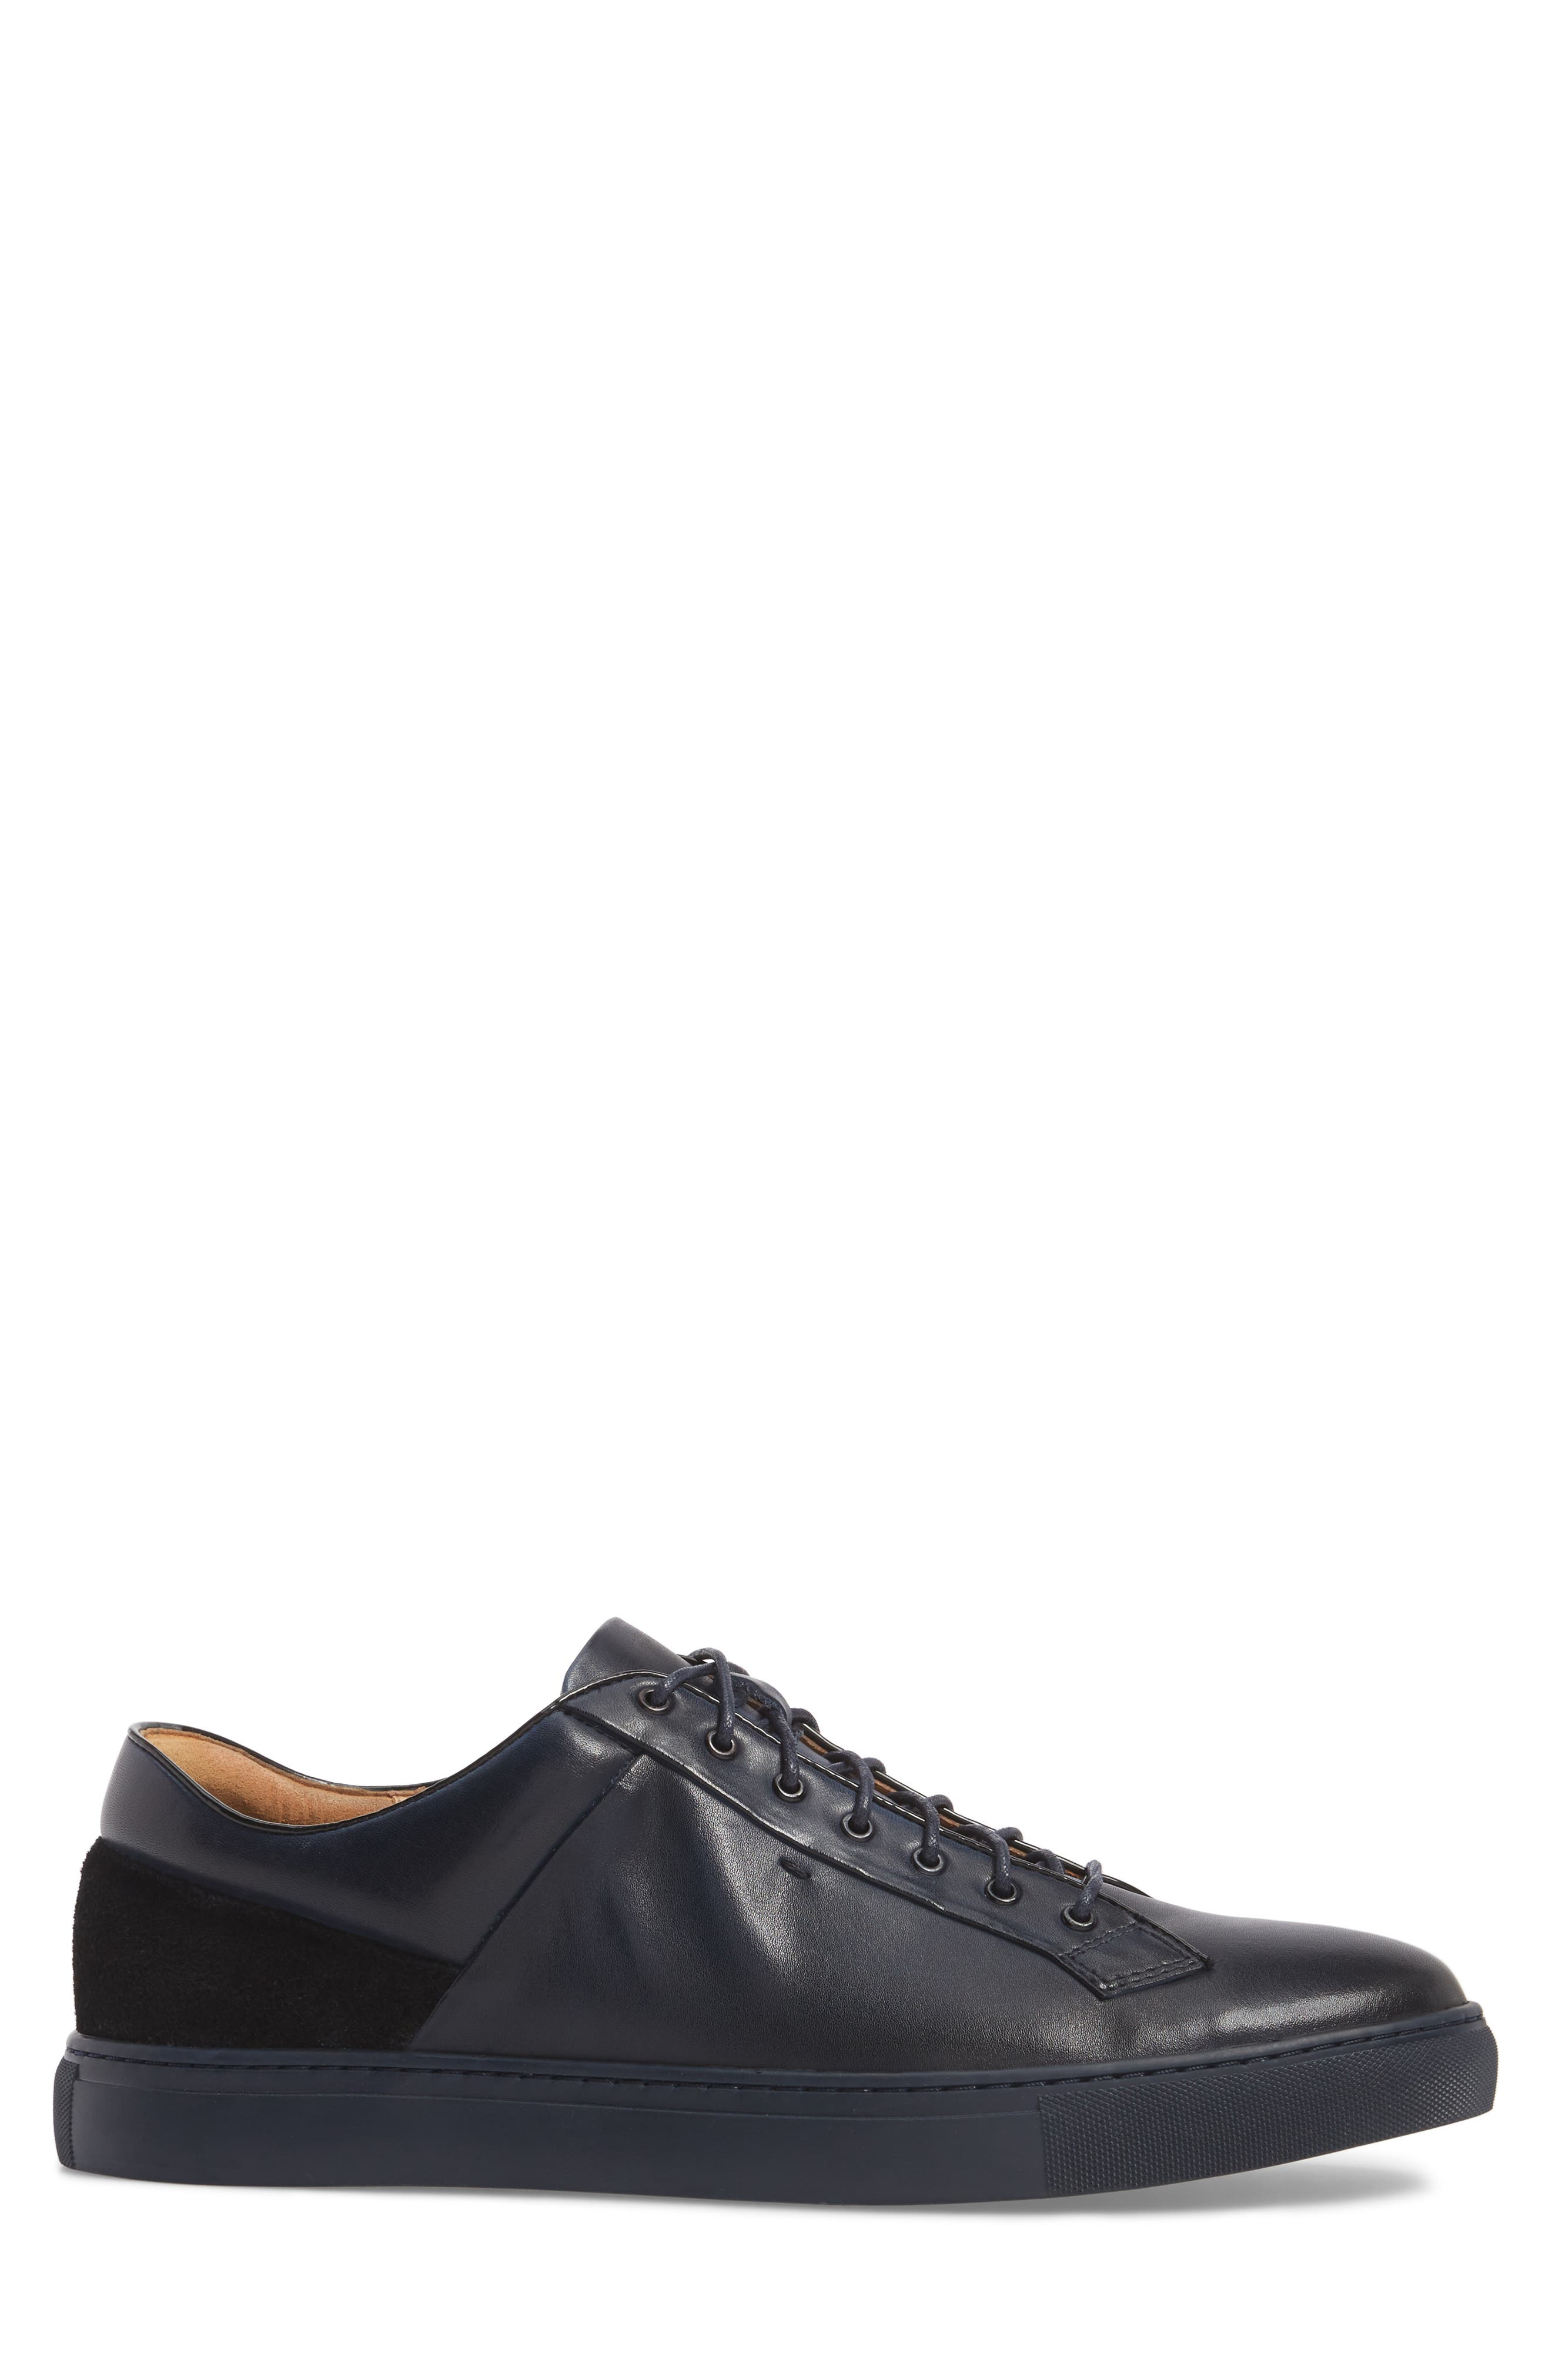 Pitch Low Top Sneaker,                             Alternate thumbnail 3, color,                             Navy Leather/ Suede